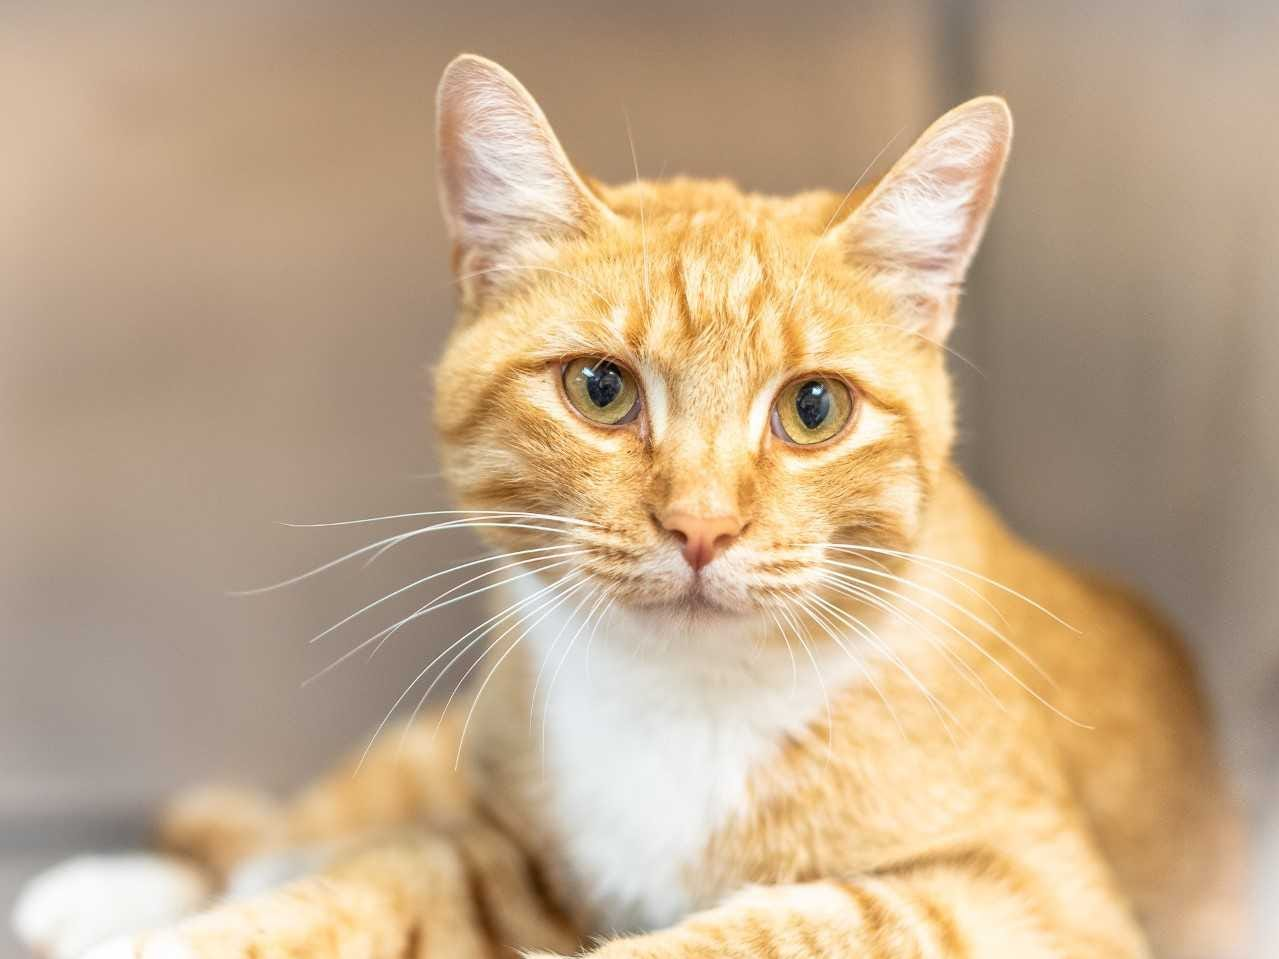 Gizmo - Male (neutered) domestic short hair, about 2.5 years old. Intake date: 8-31-2018.